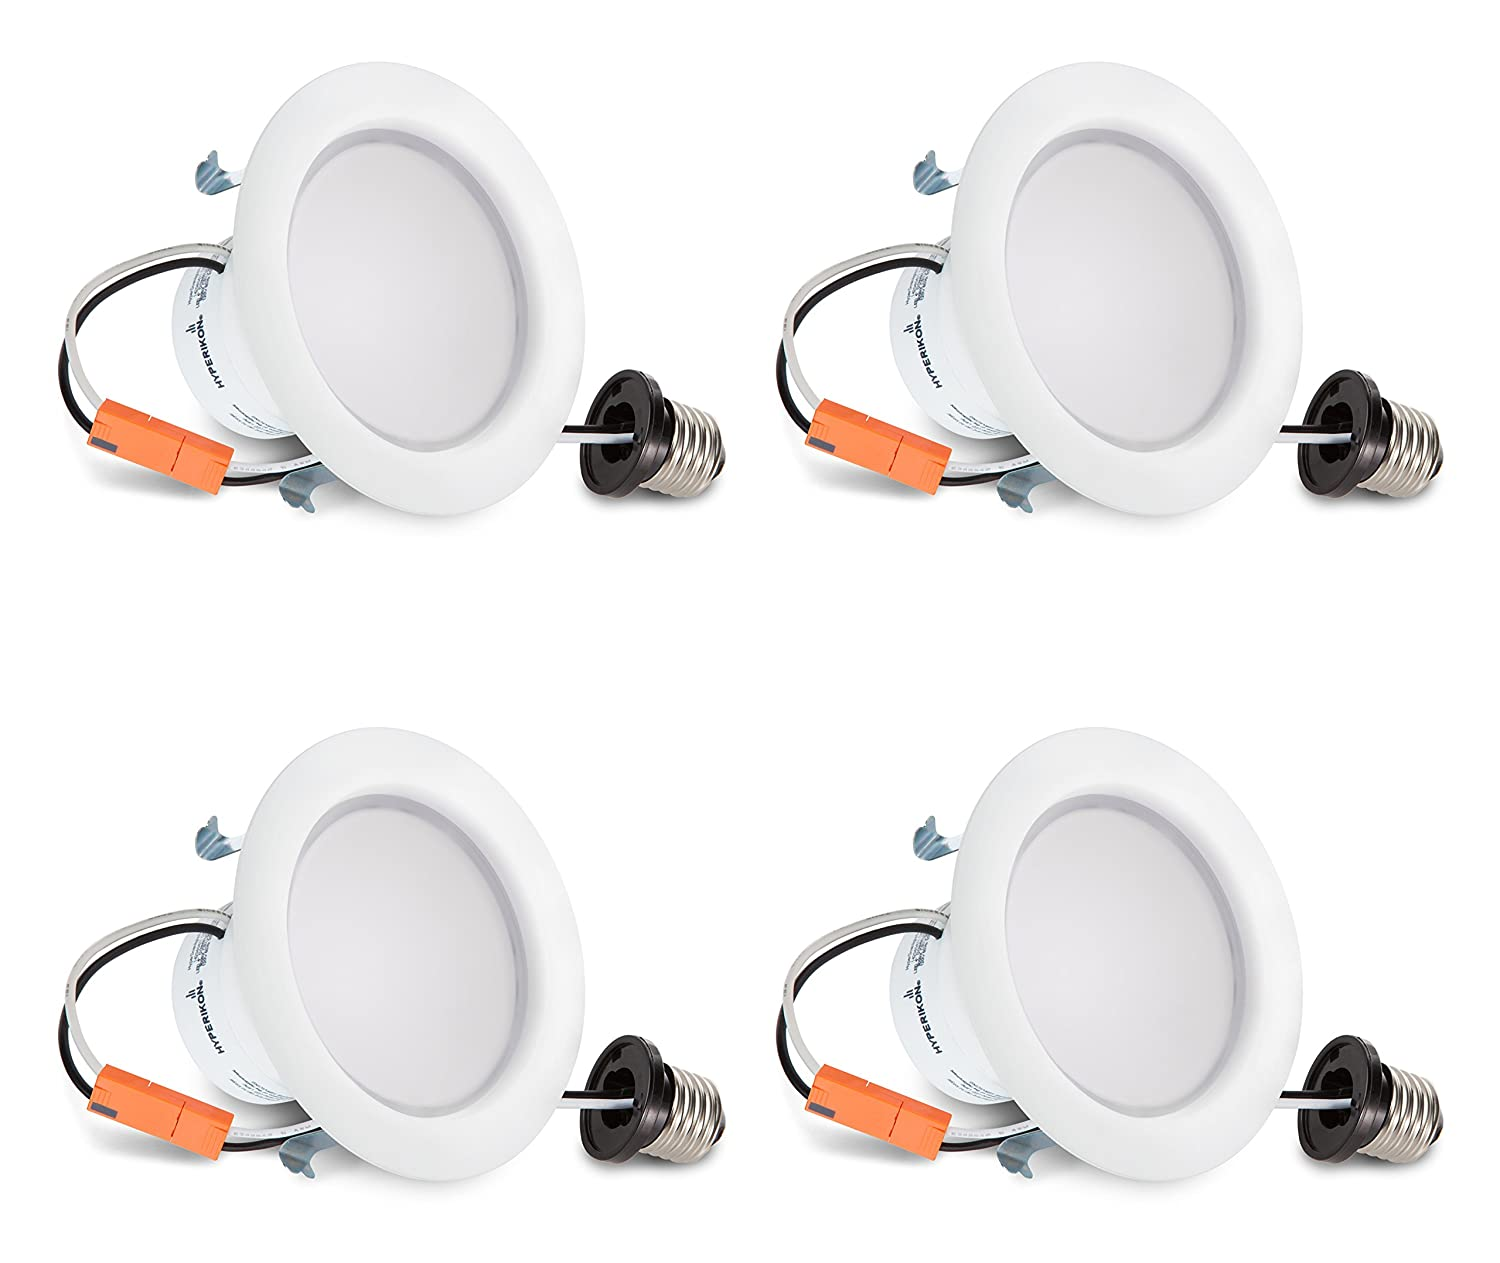 Hyperikon 4 Inch LED Recessed Lighting Dimmable Downlight, 9W (65W Equivalent), 4000K, CRI94, Retrofit Lighting Fixture, Great for Cans in Bathroom, Kitchen, Office (4 Pack)